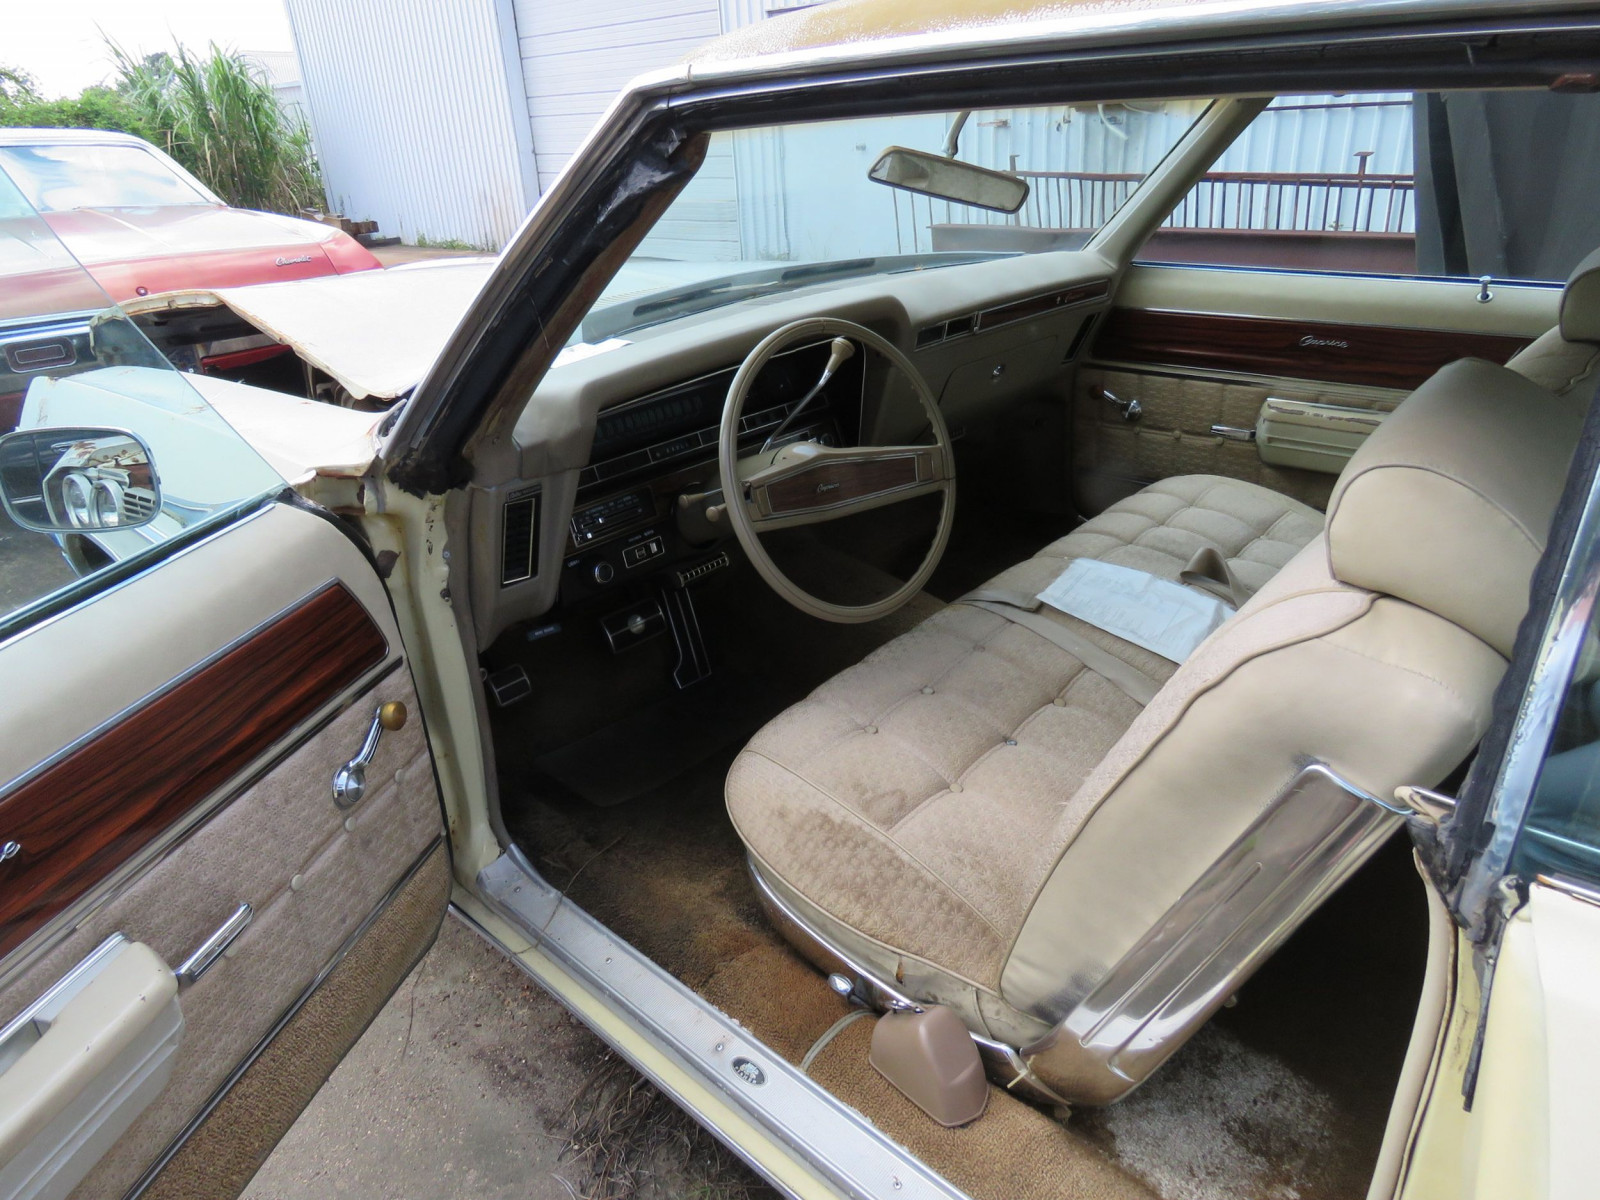 1970 Chevrolet Caprice 2dr HT - Image 7